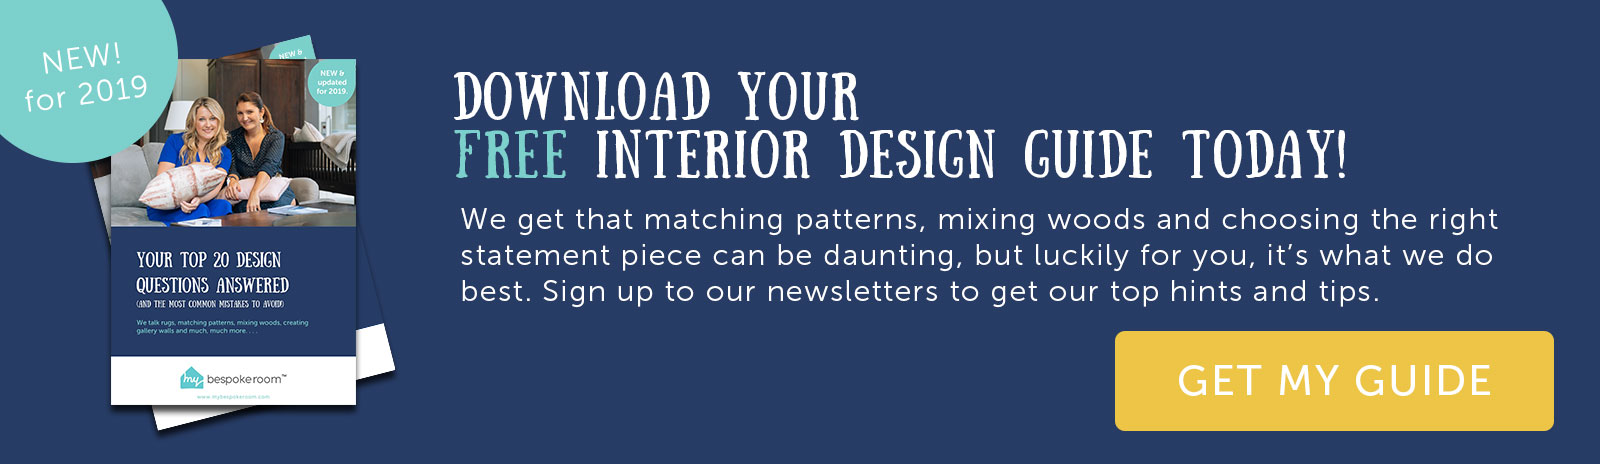 Download your free interior design guide today.